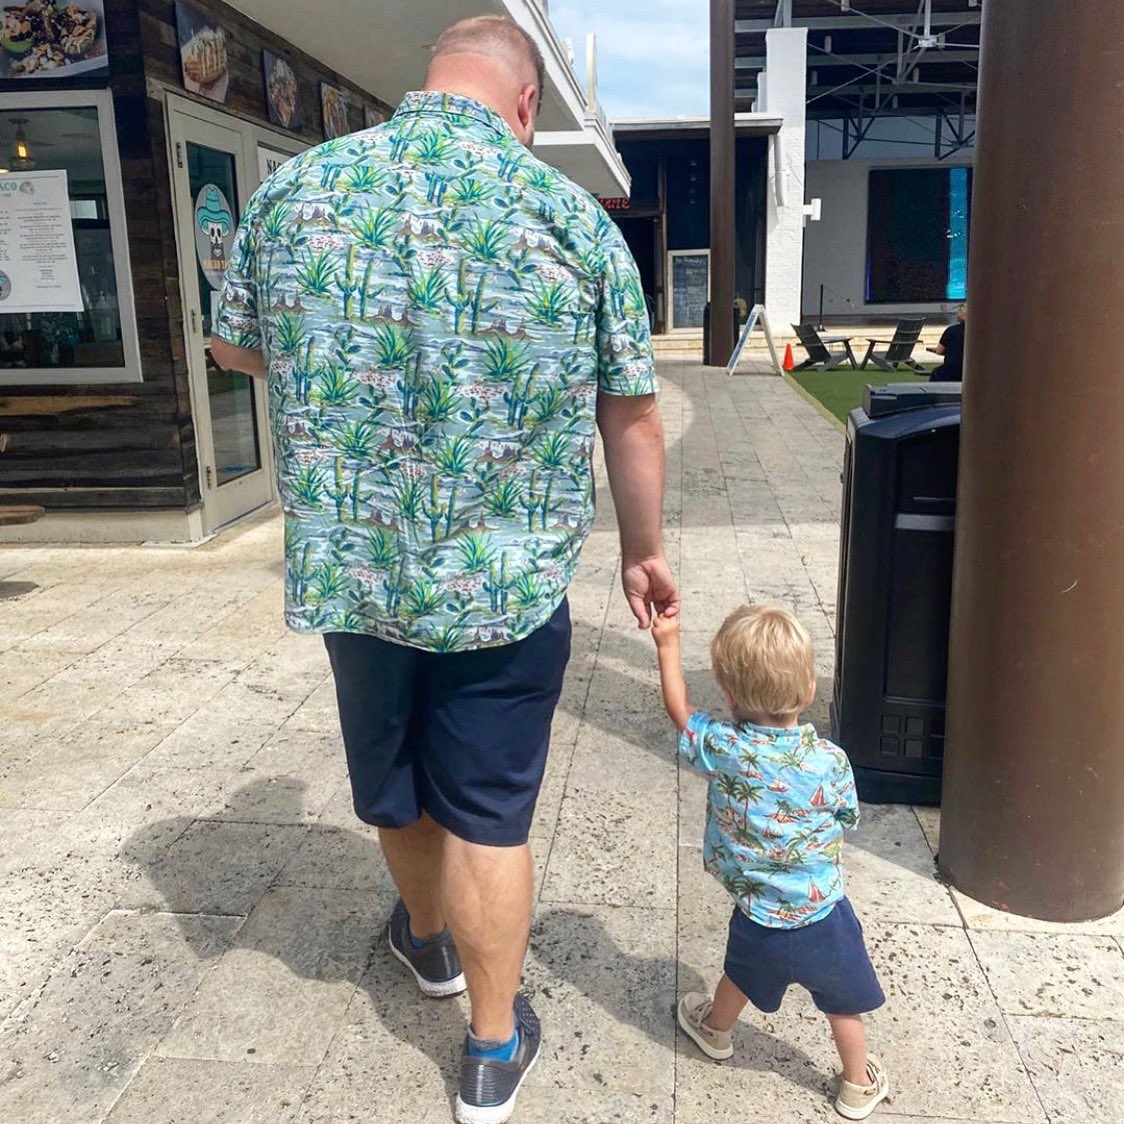 #Twinning with Dad 😍   The Hub is an oasis where the everyday focus is #QualityTime with family & friends  creating memories together❤️  • • 📸: @timgerst #family #friends #festival #hub30a #30a #community #familyfun #entertainment #supportlocal #livemusic #hubmemories